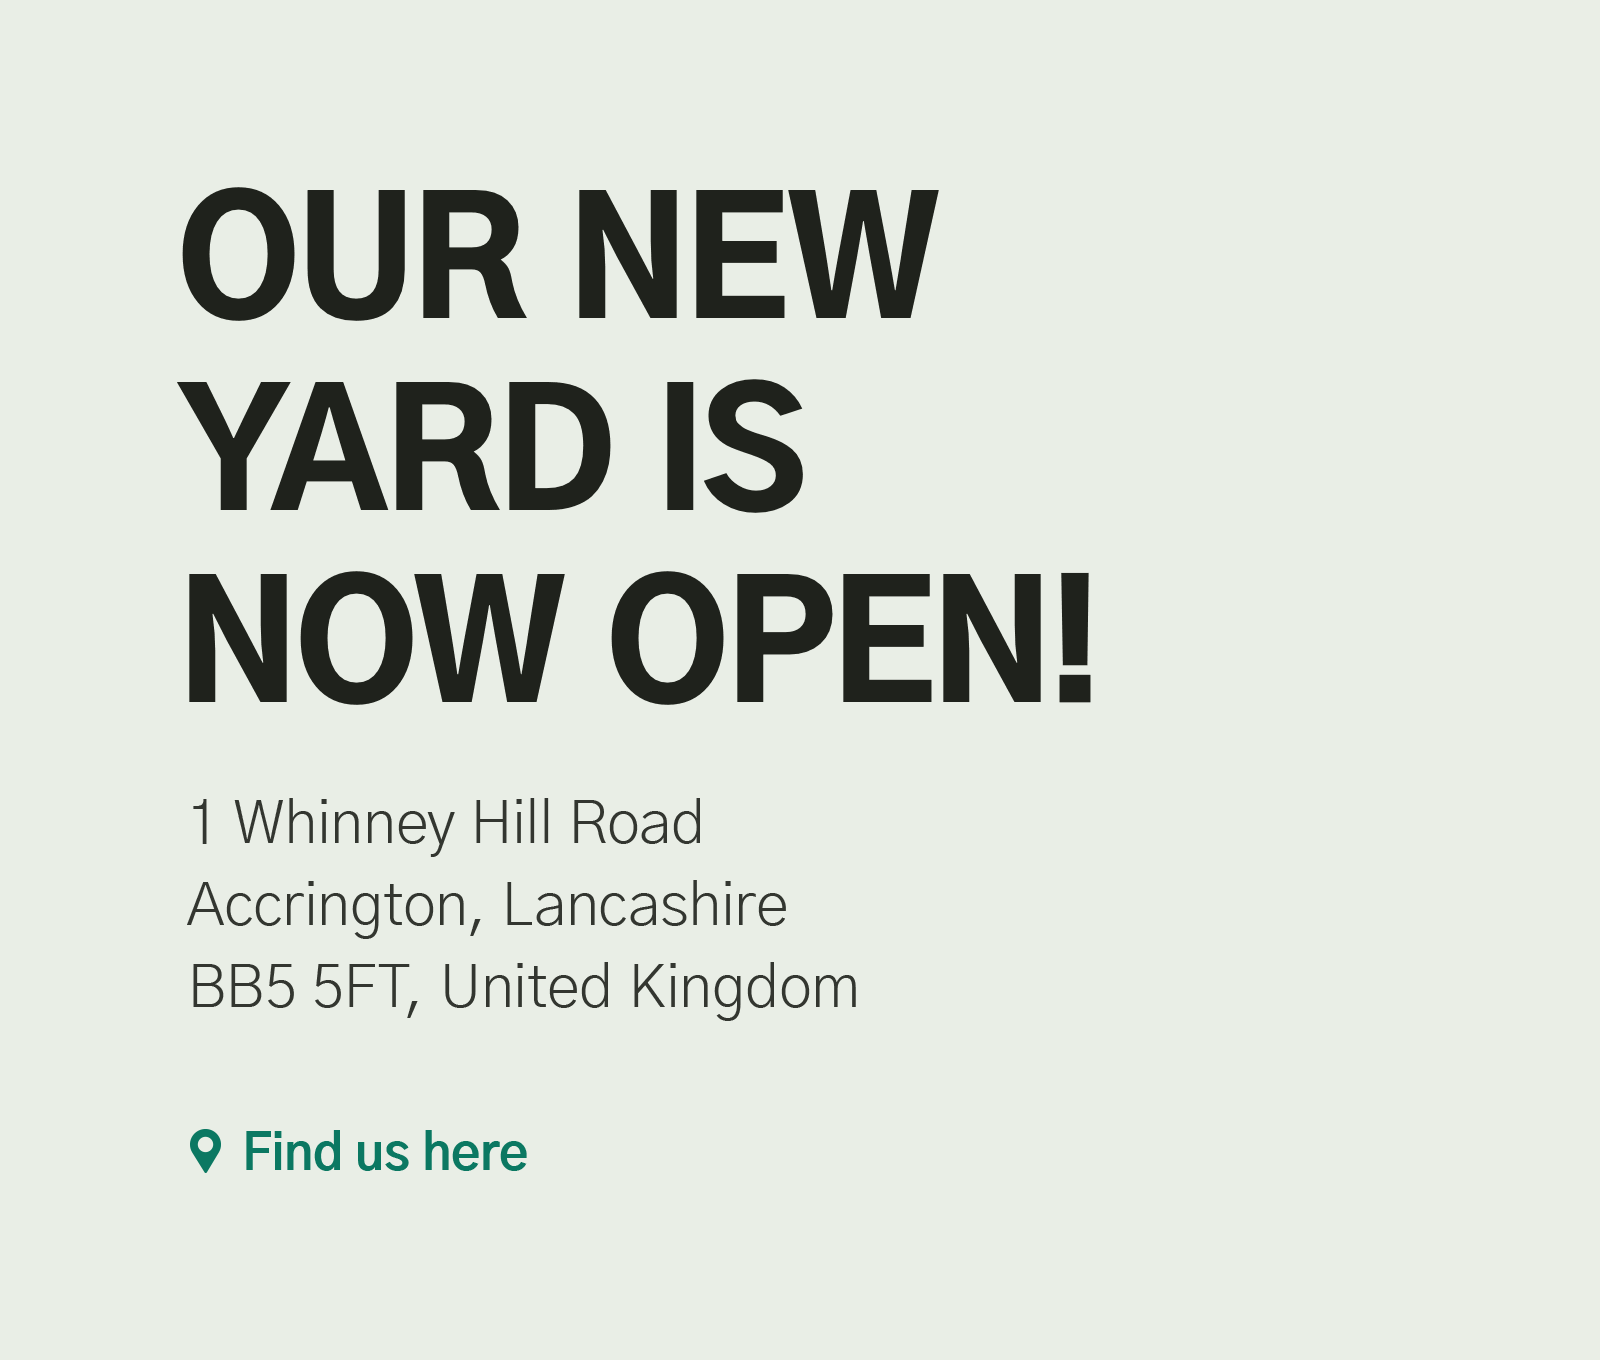 Our new yard is now open